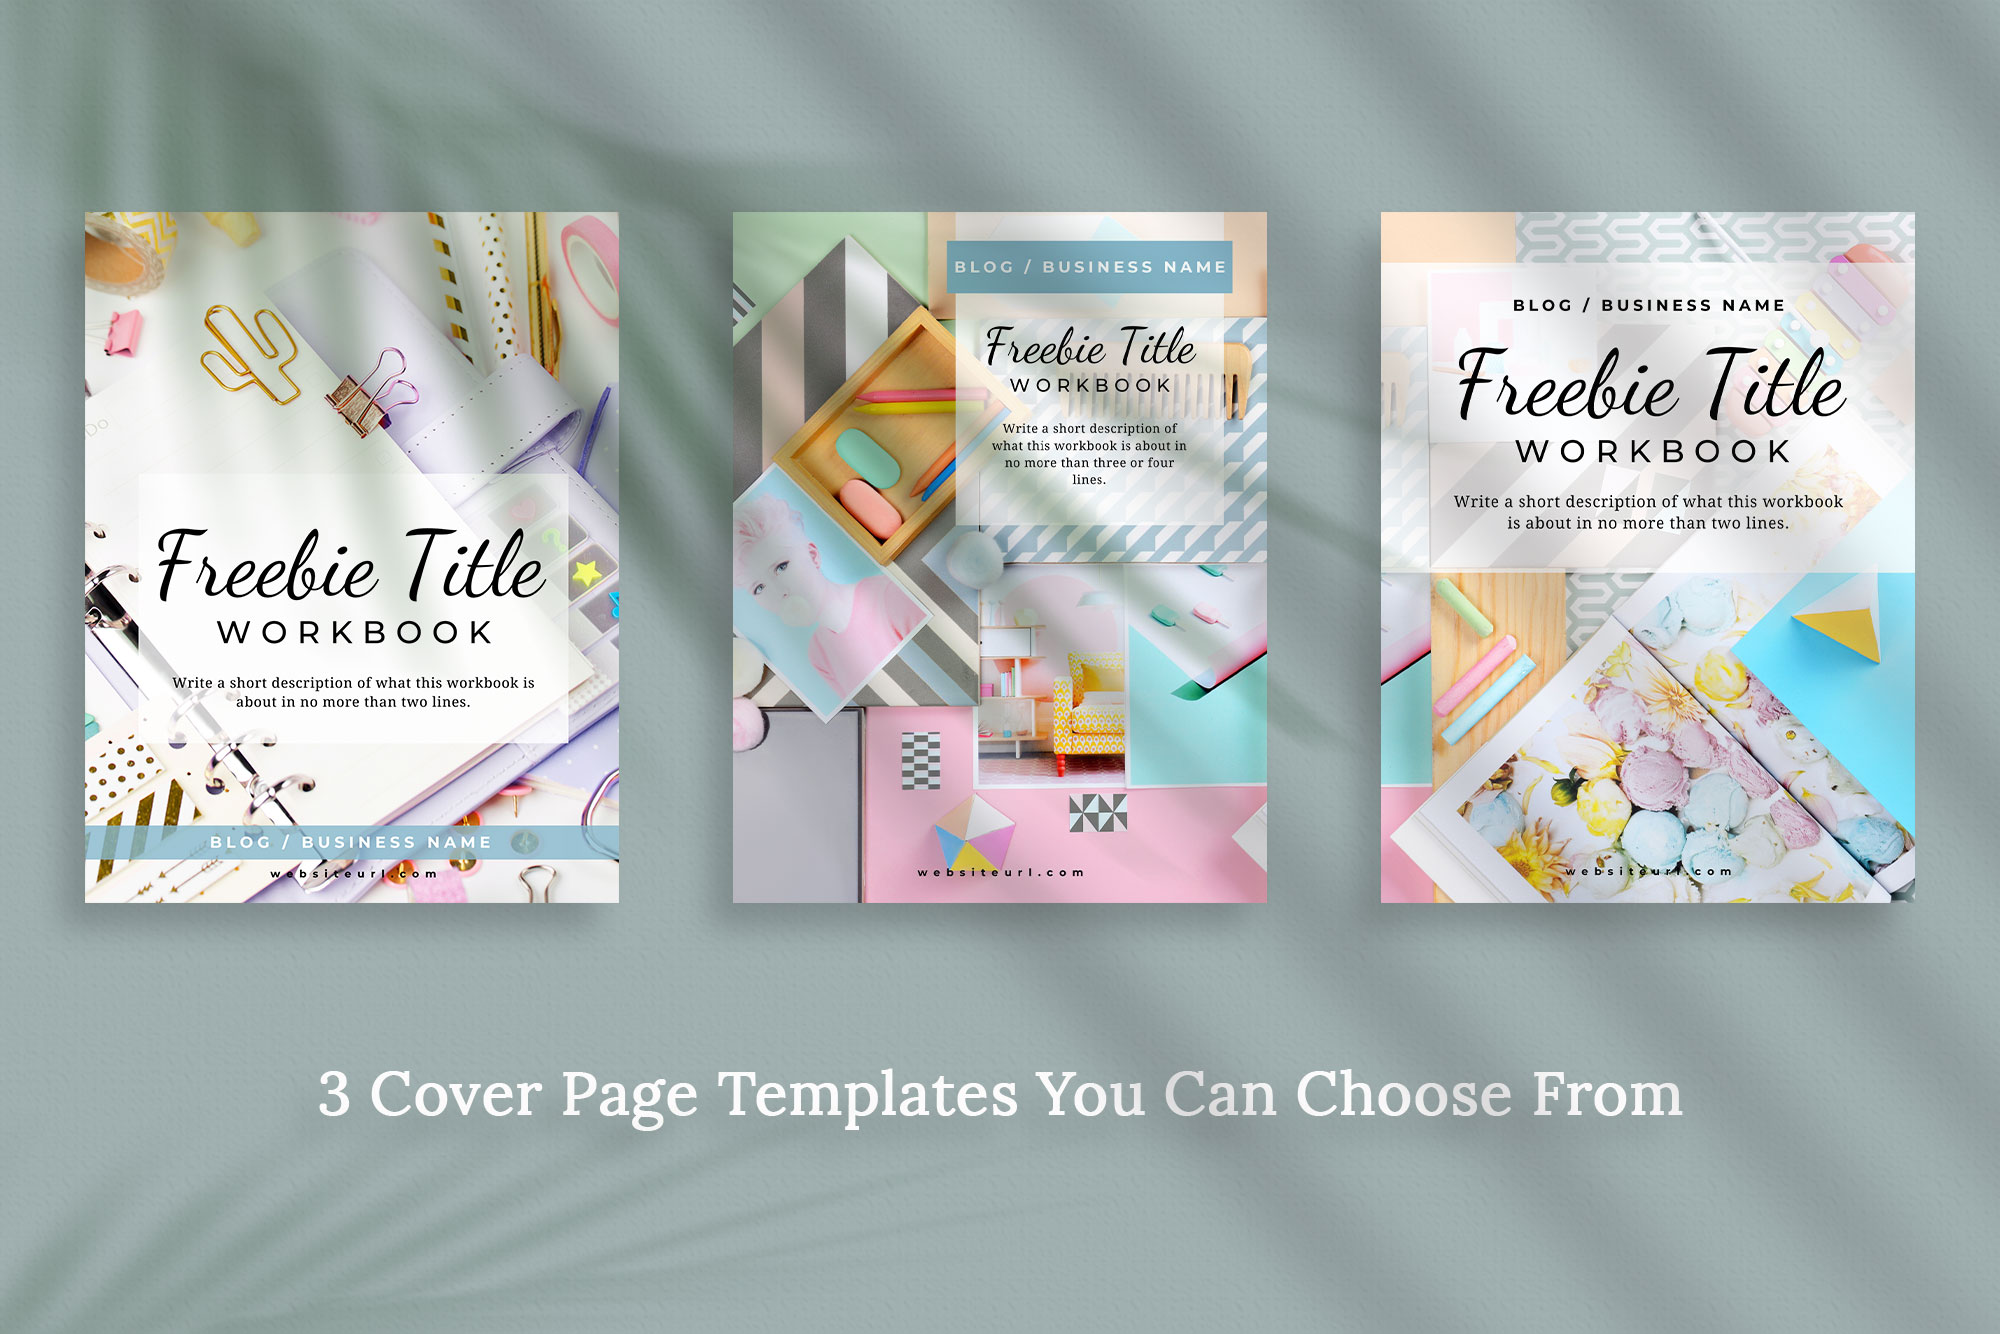 Workbook or Opt-in Freebie Canva Template | Colfax example image 4